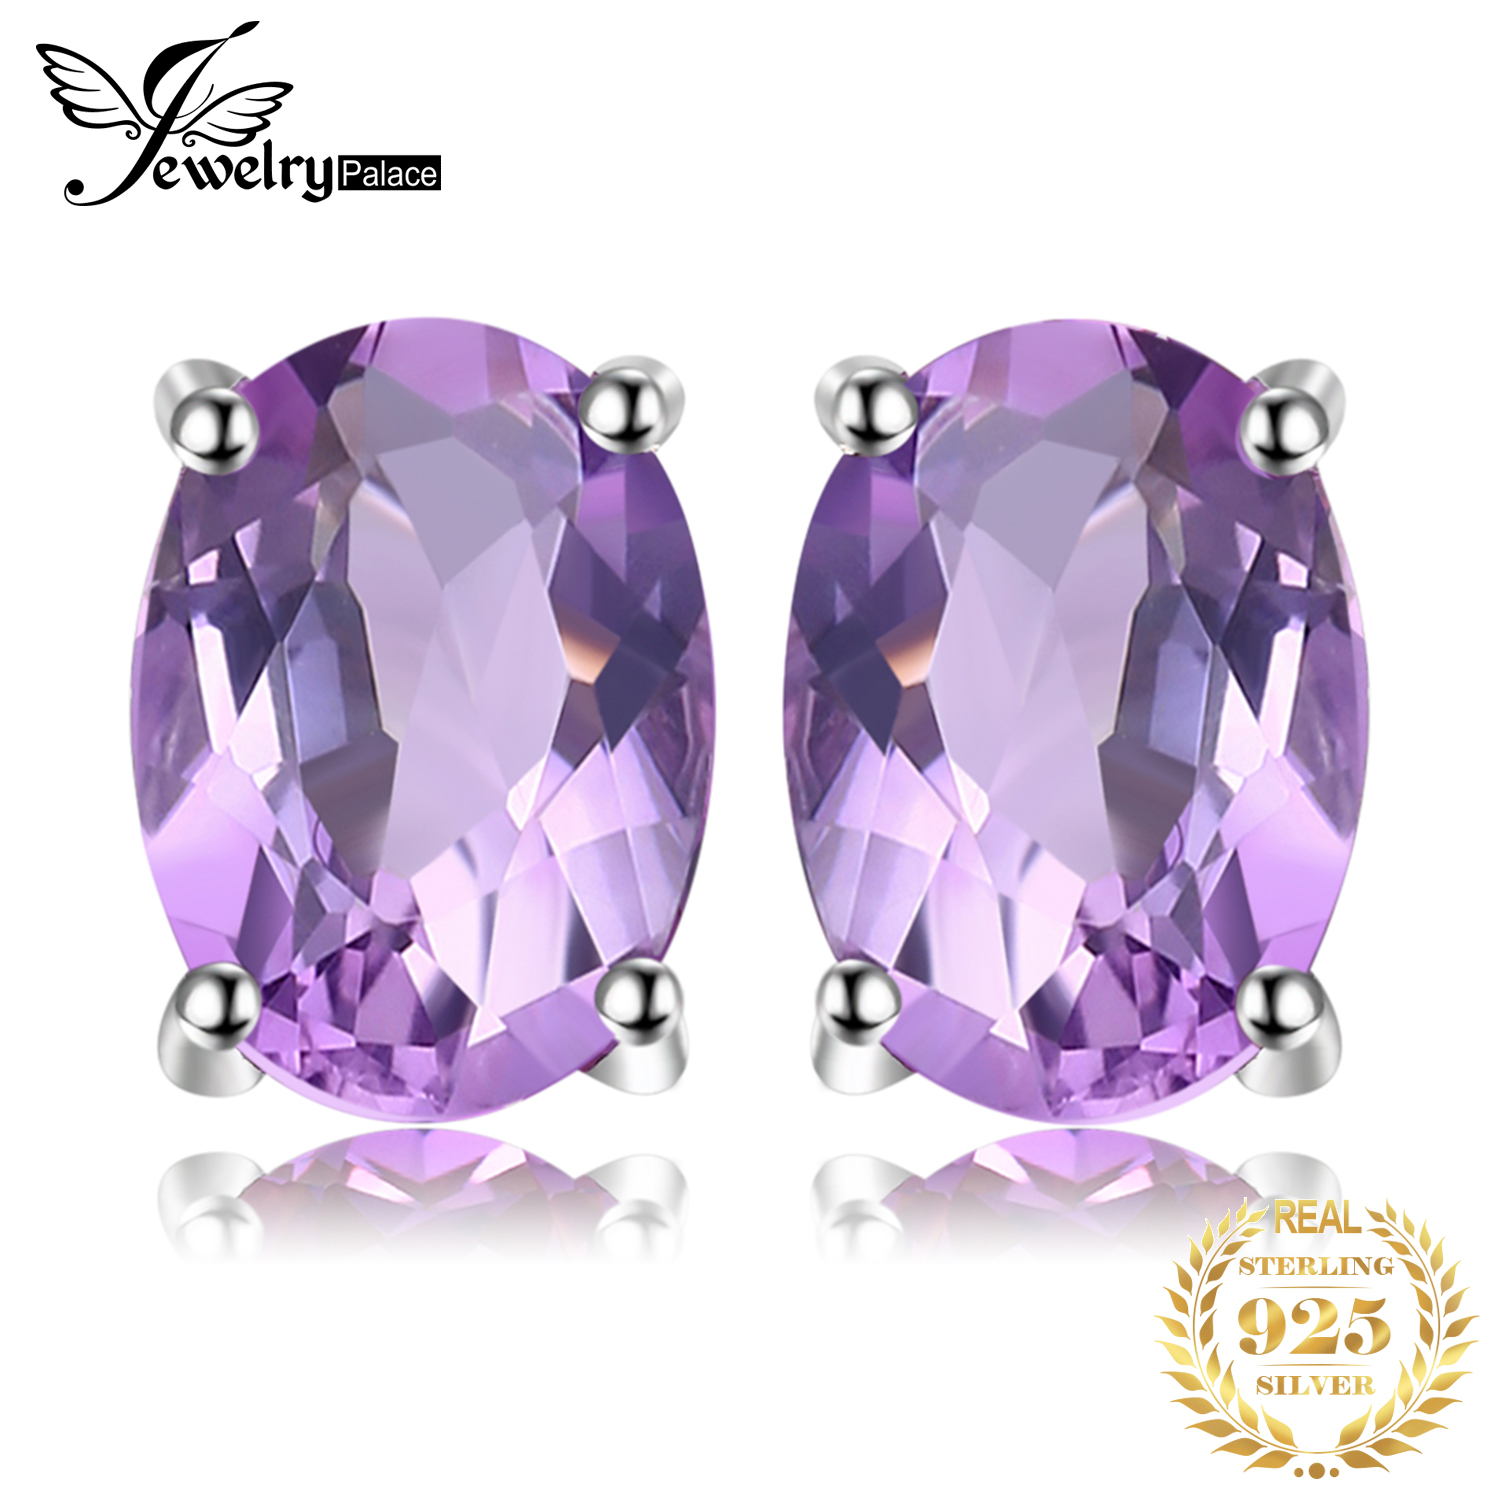 JewelryPalace 1.4ct Genuine Amethyst Stud Earrings 925 Sterling Silver Earrings For Women Korean Earings Fashion Jewelry 2020